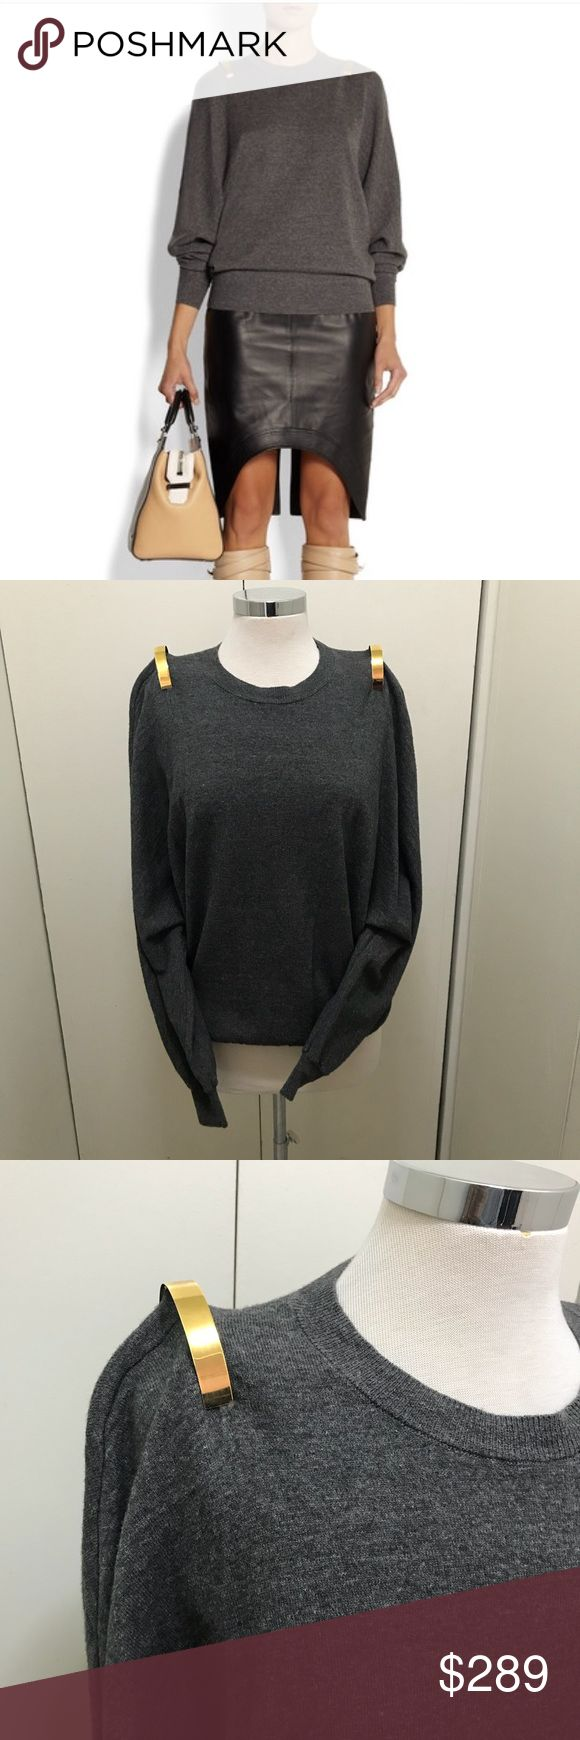 Givenchy sweater Gold bar sweater by Givenchy. In fantastic preowned condition. Retails for $1215 currently on sale at net a porter for over $600 . Open to sensible offers. Guaranteed authentic Givenchy Sweaters Crew & Scoop Necks